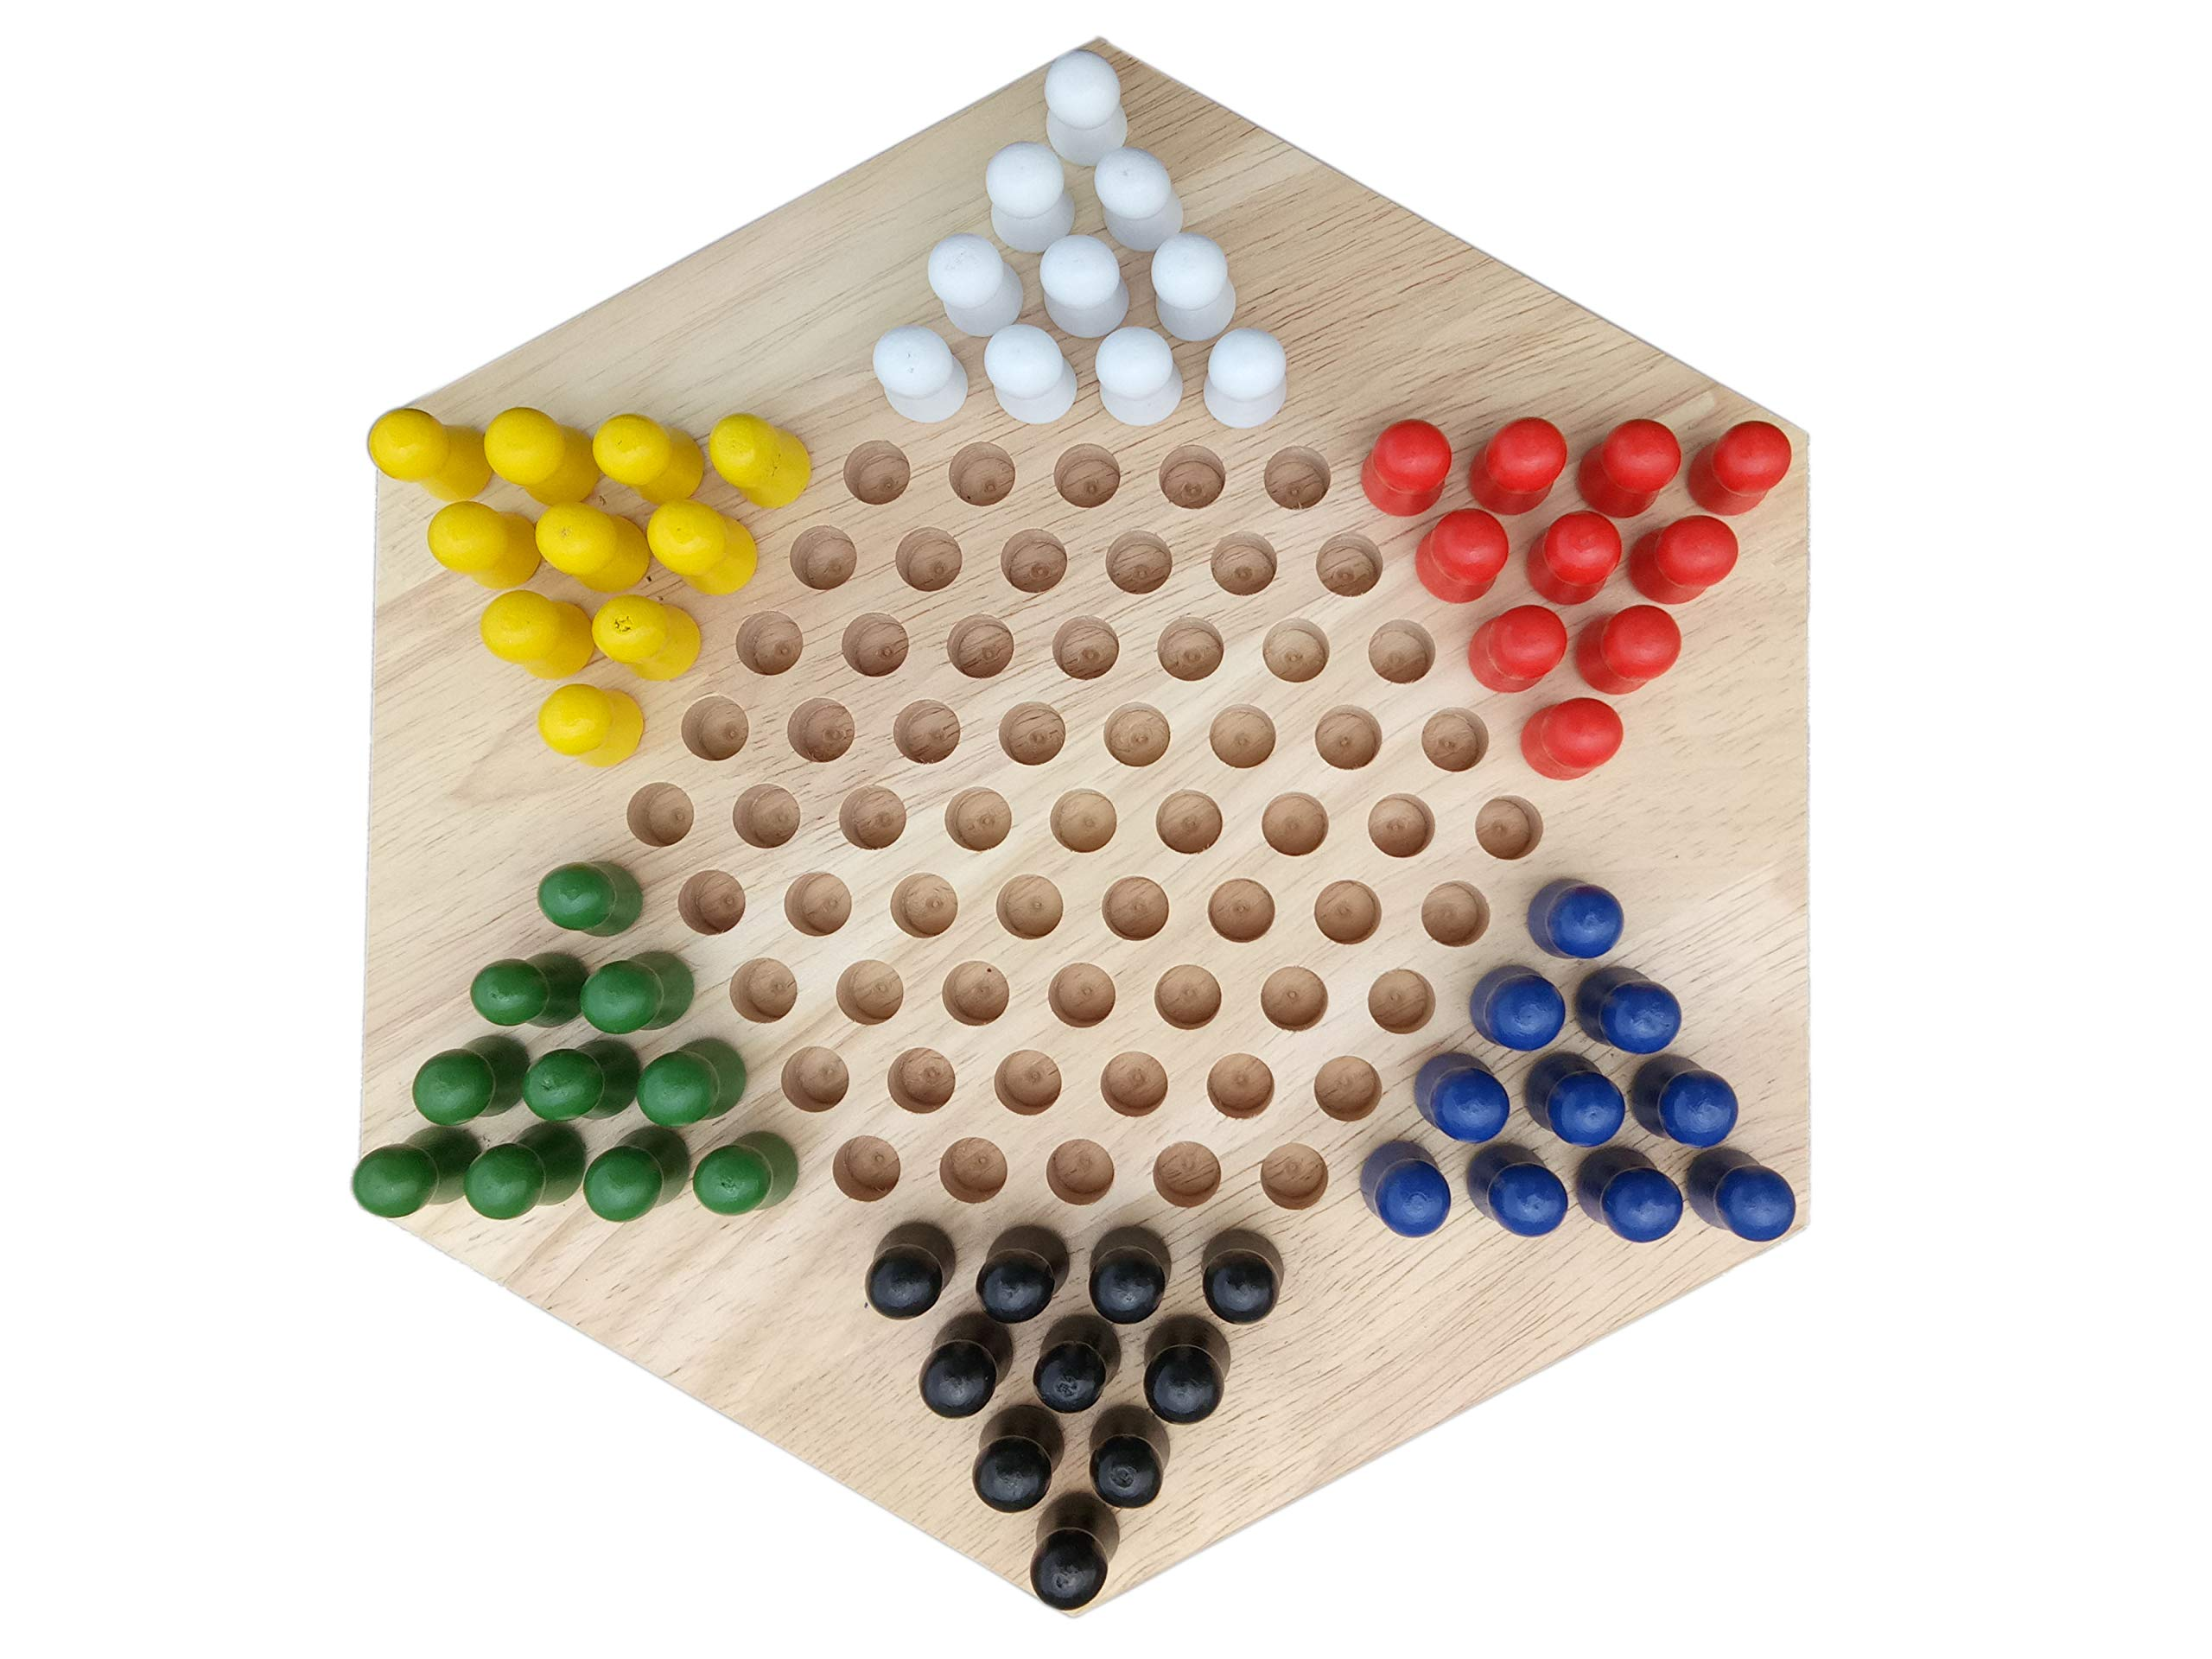 Shy Shy Chinese Checkers Wooden Board Game for Kids and Toddlers (B07NNR37PJ) Amazon Price History, Amazon Price Tracker